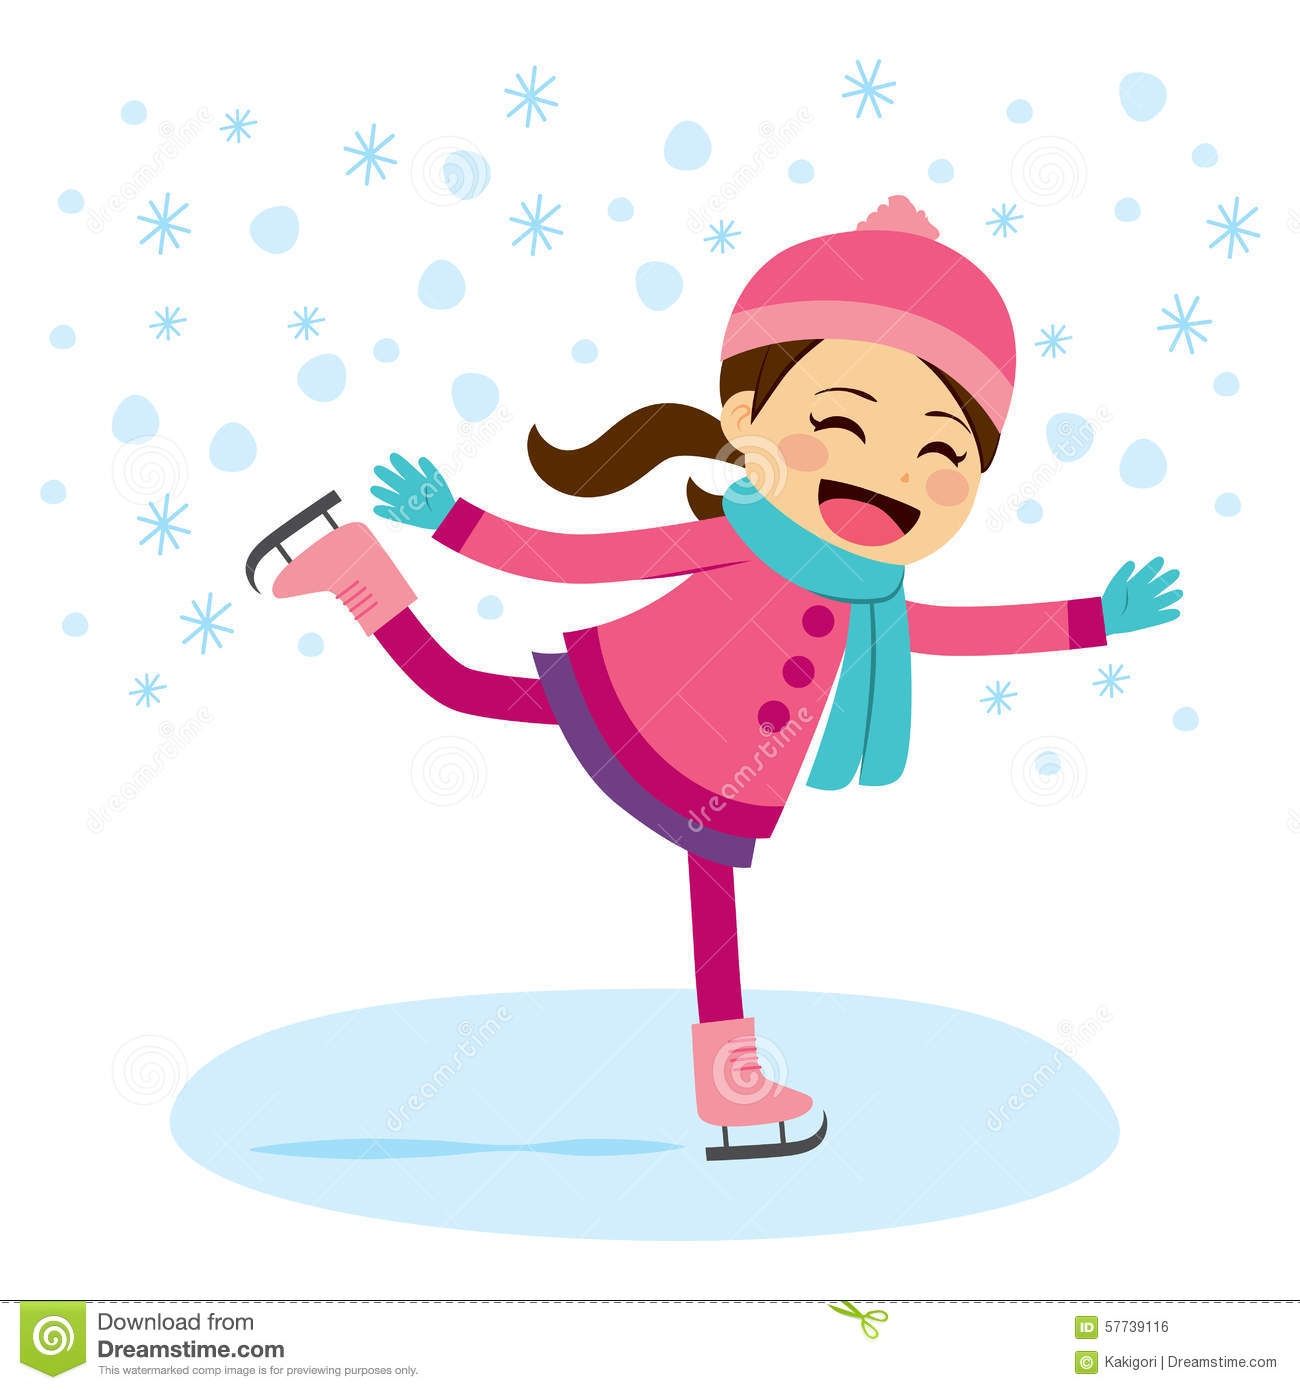 Ice skates clipart Unique Little Girl clipart skating Pencil and in.